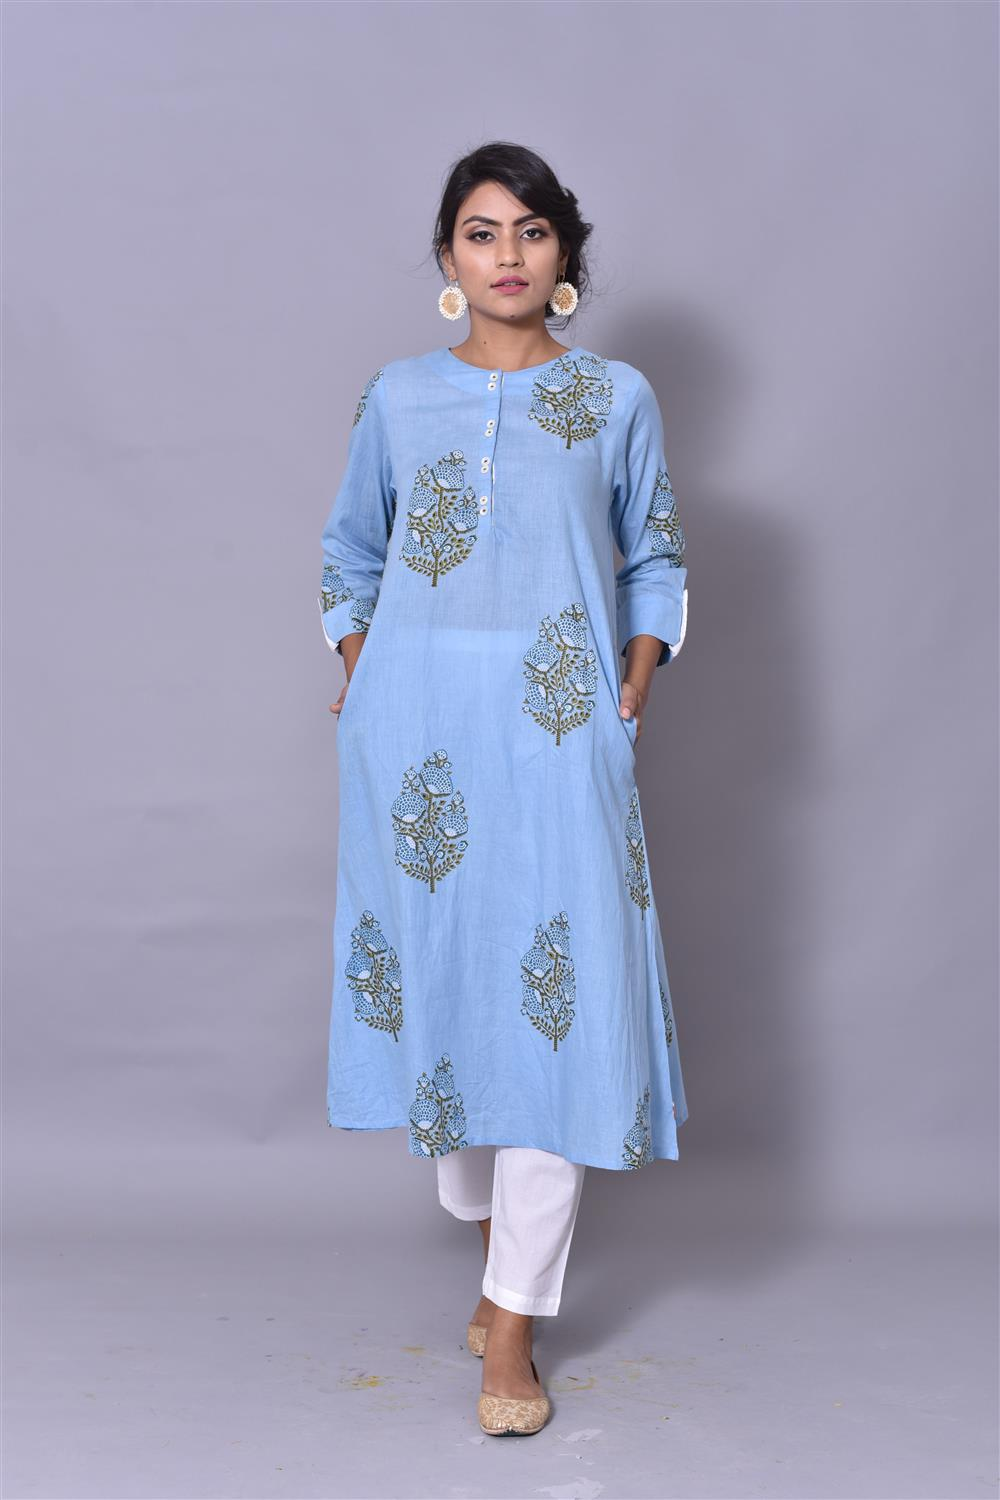 POWDER BLUE STRAIGHT KURTA